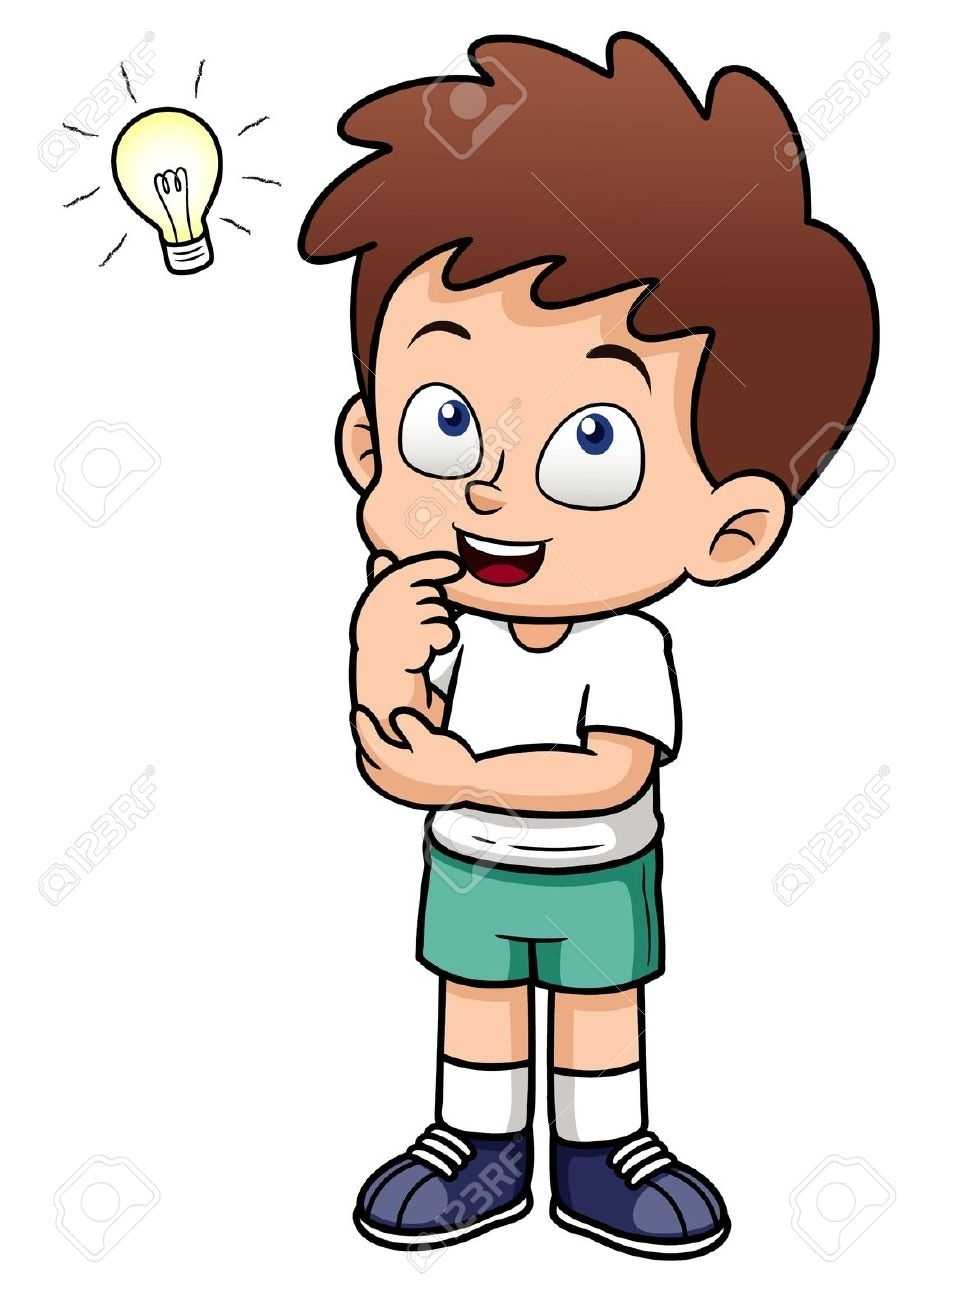 Clipart Of Kid Thinking.